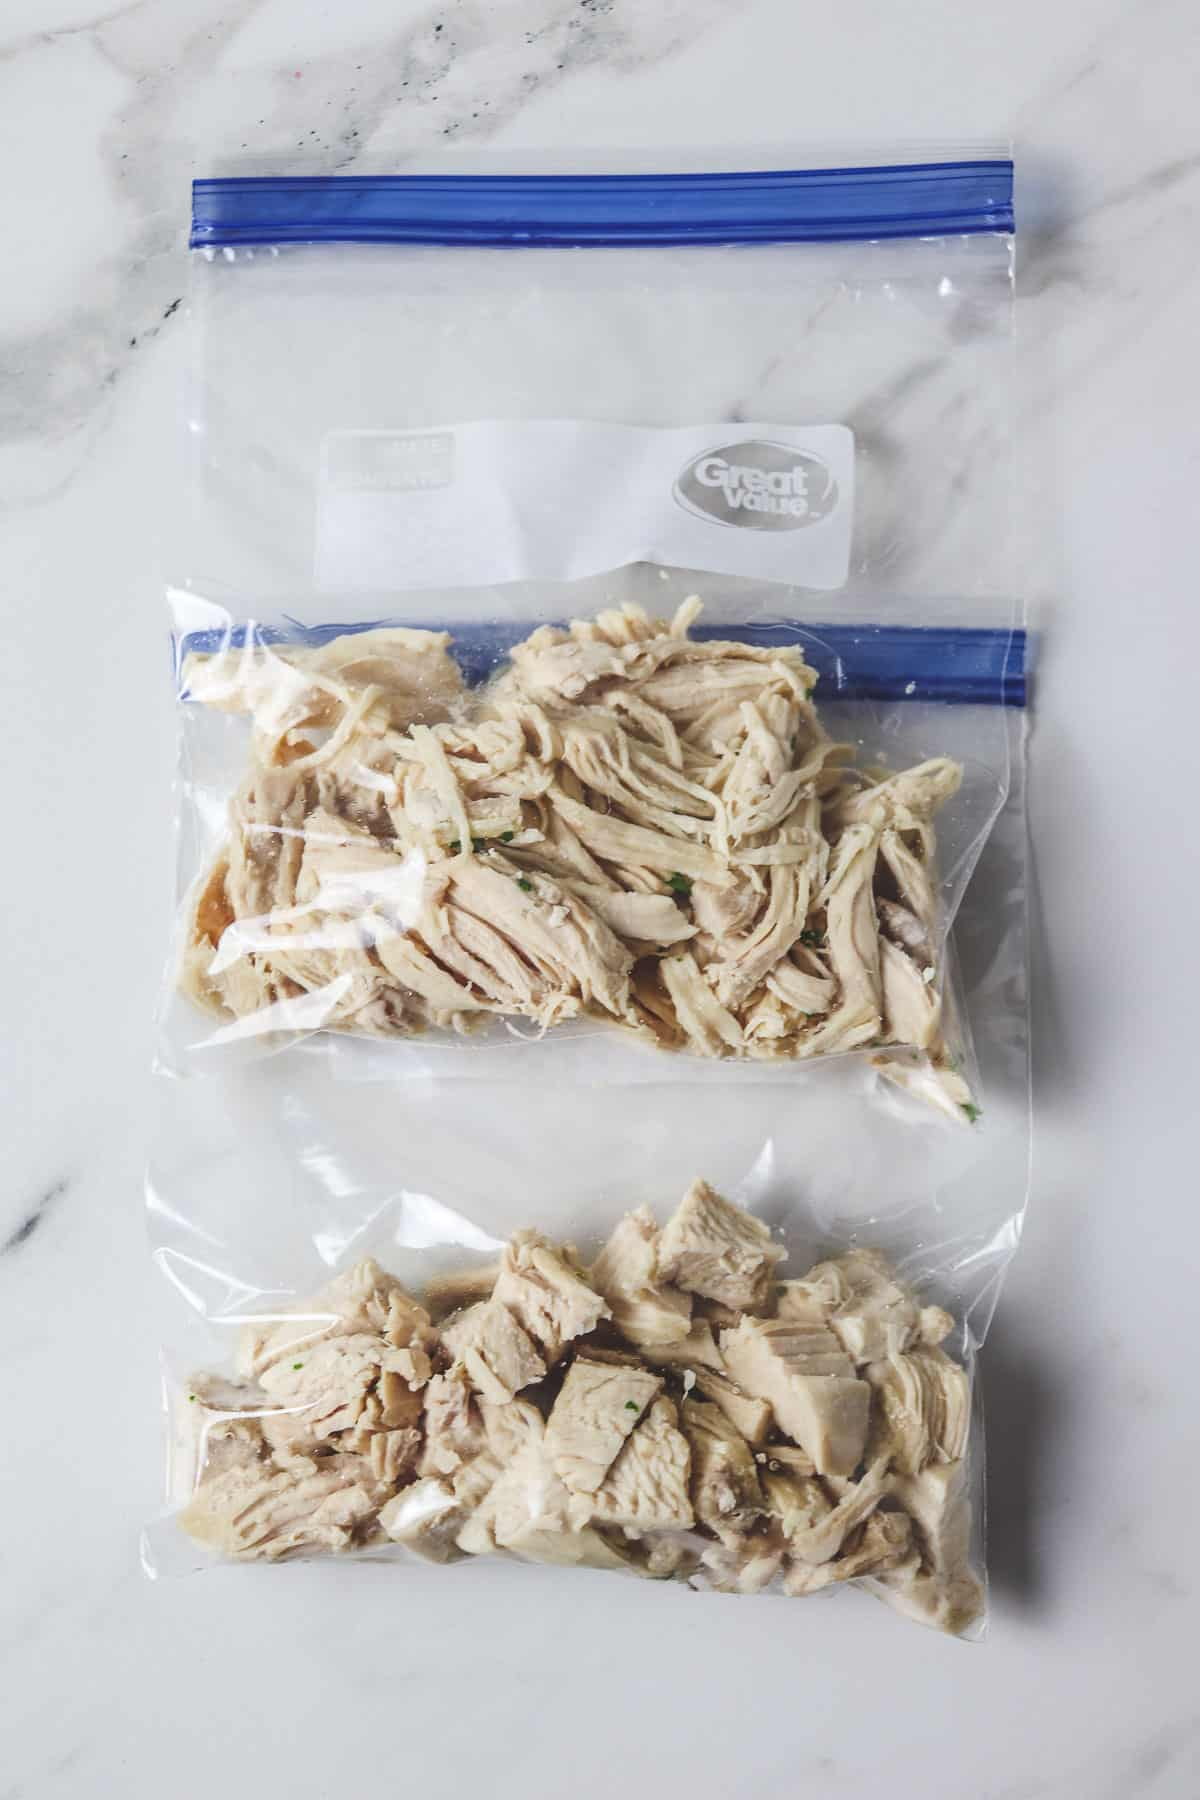 shredded and diced chicken in plastic bags ready to freeze